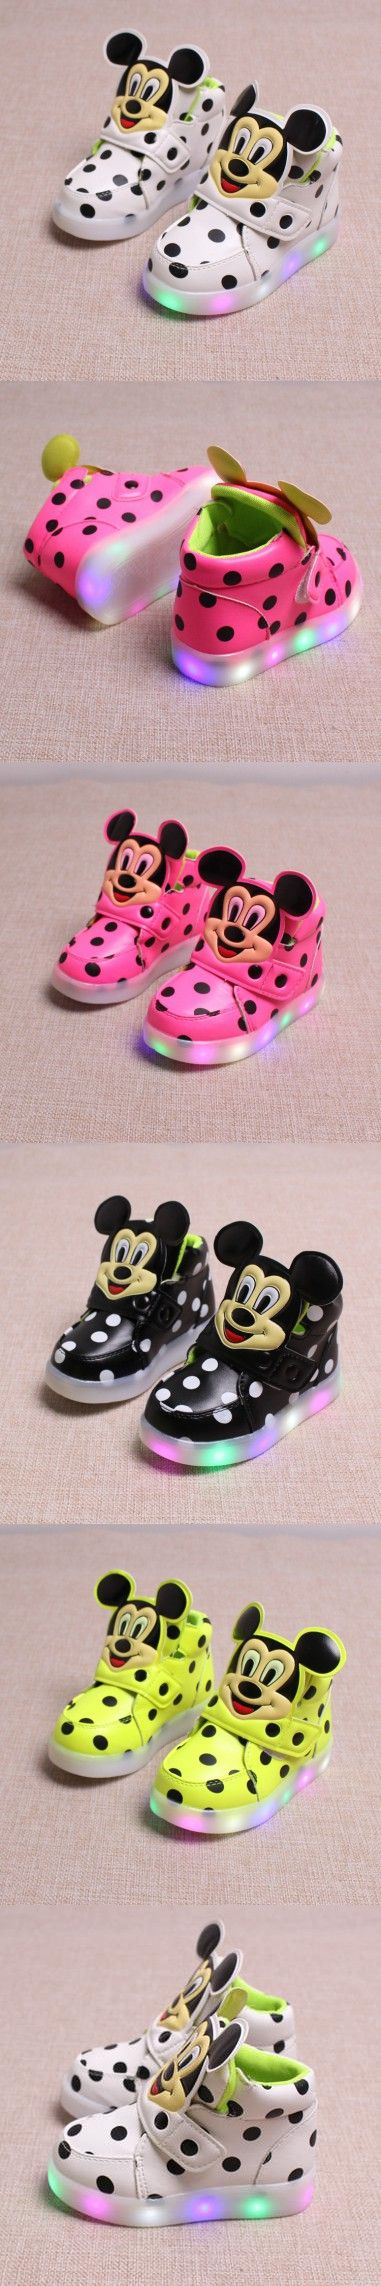 Chaussure Enfant Kids Shoes Spring Autumn New Breather Children Shoes With Light Baby Boys Led Light Sport Shoes Girls Sneakers $9.24